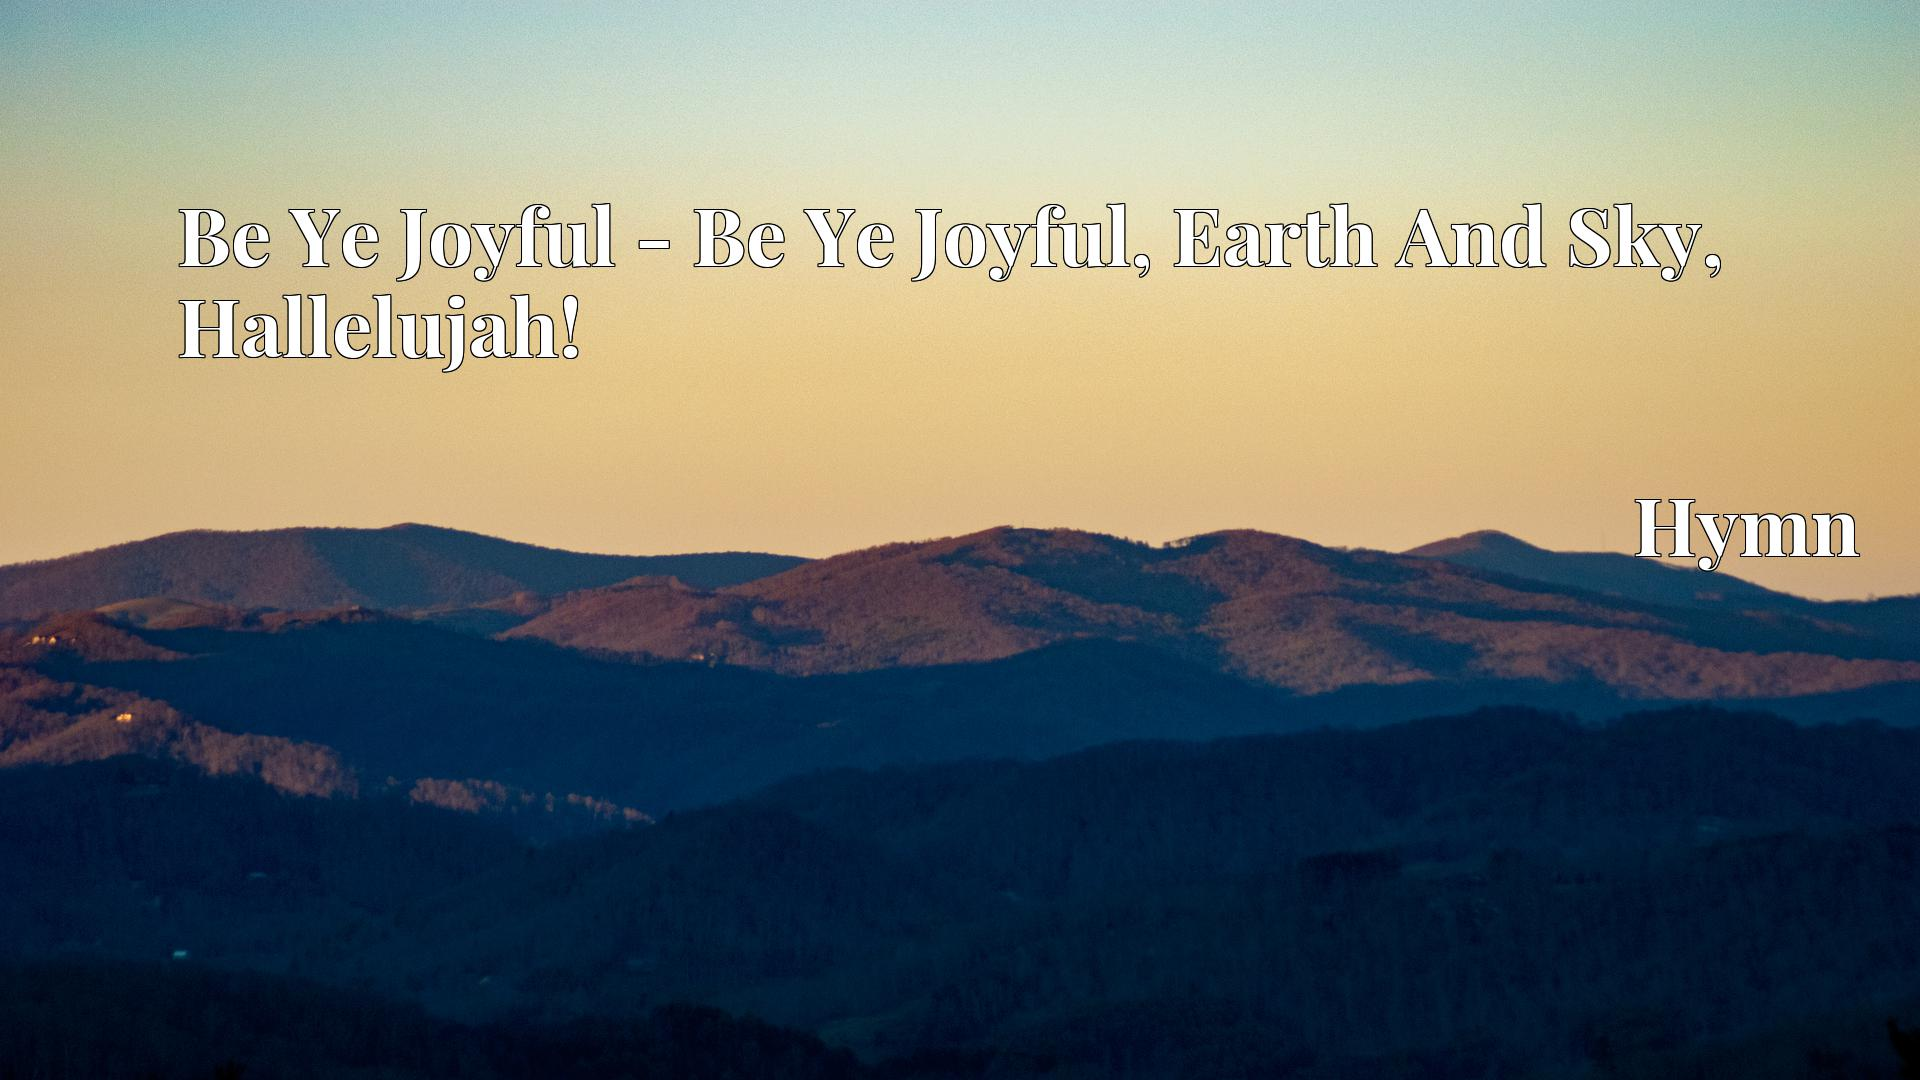 Be Ye Joyful - Be Ye Joyful, Earth And Sky, Hallelujah! - Hymn